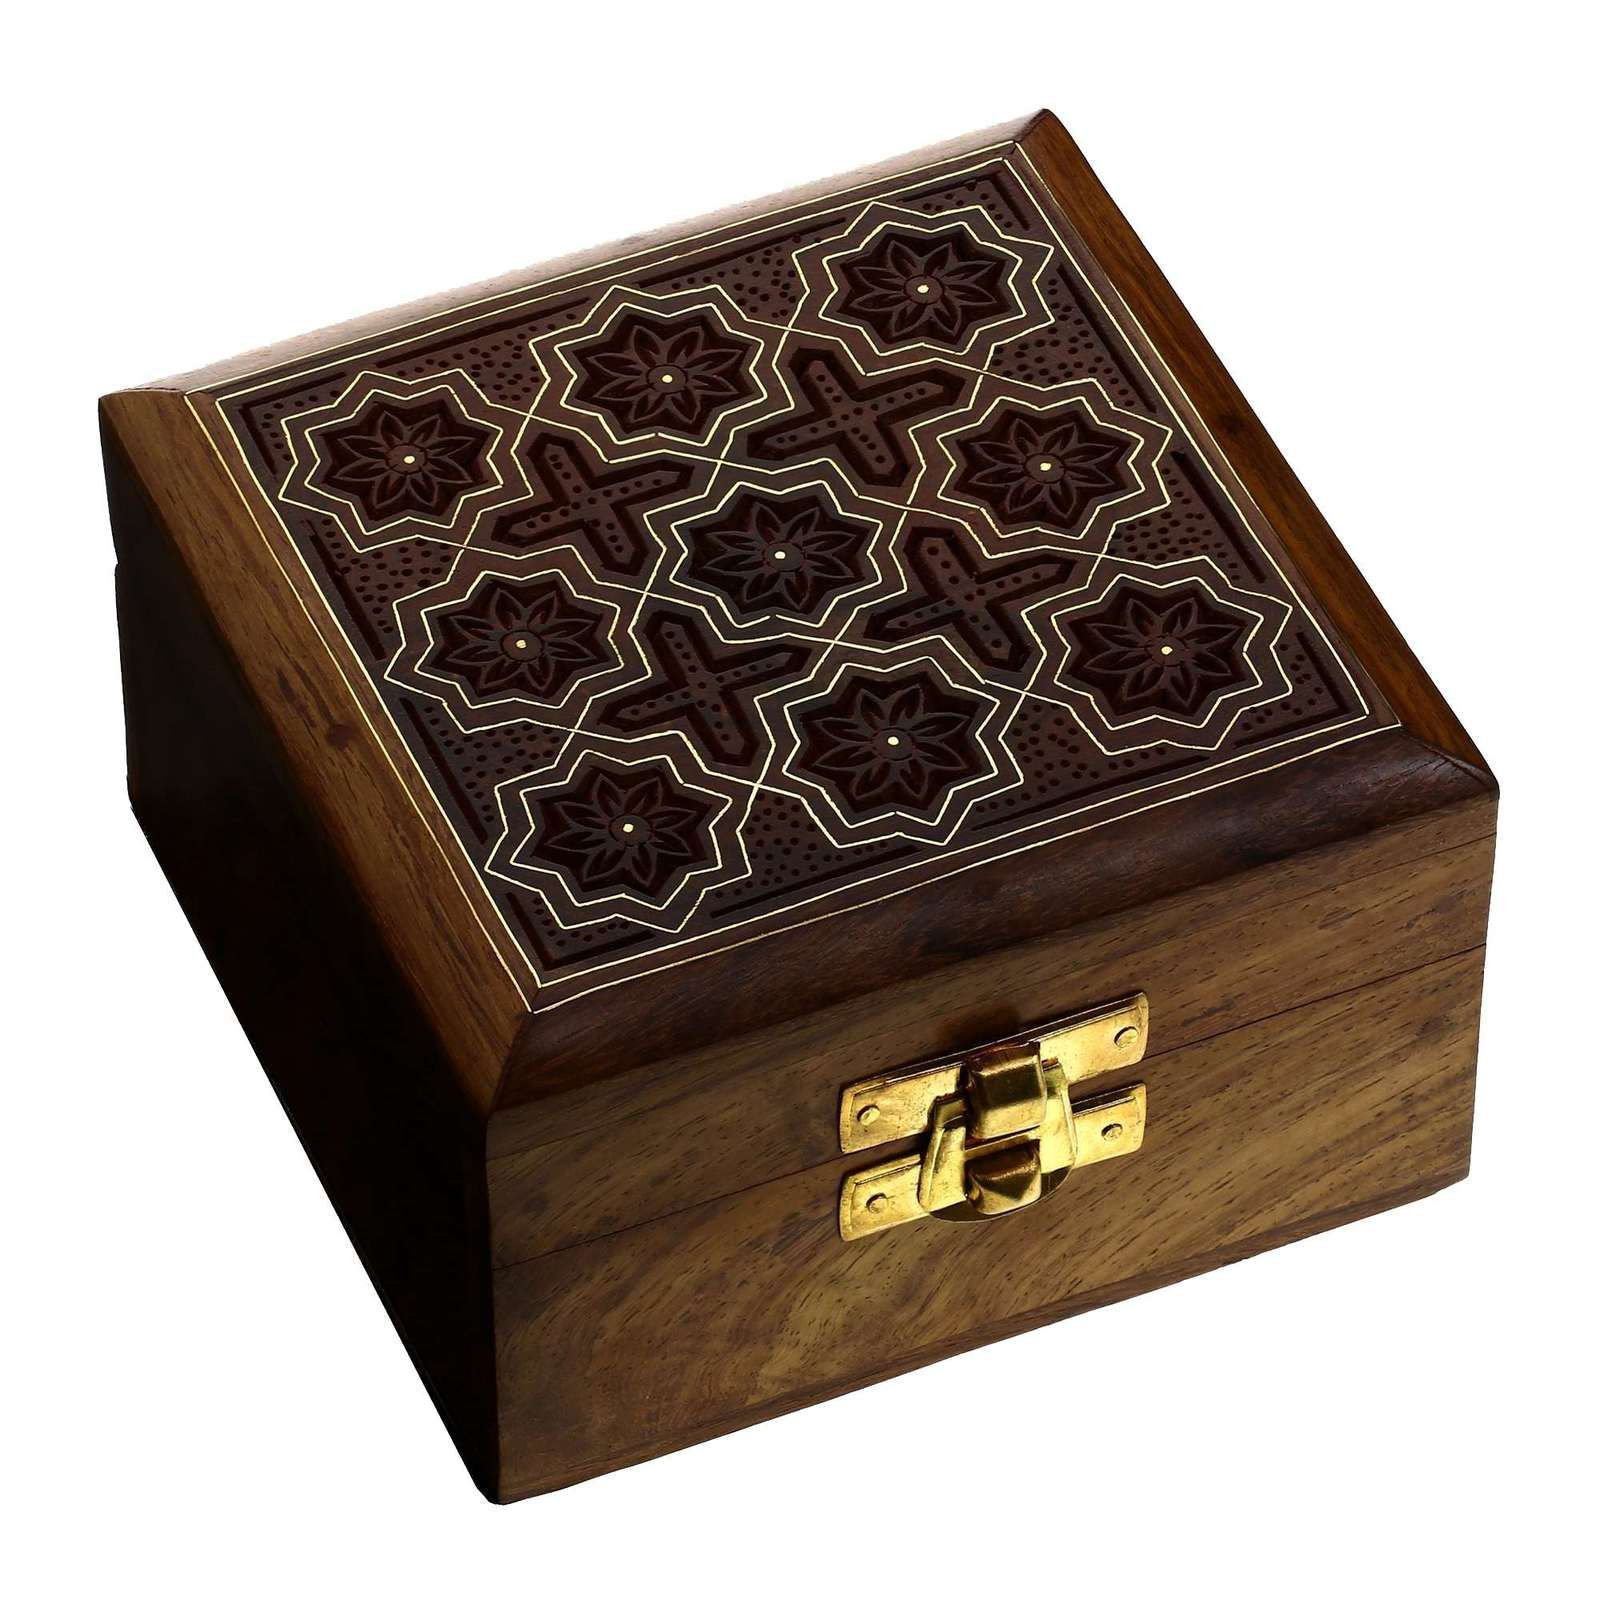 Antique jewelry box wooden anniversary gift portable for Handmade wooden jewelry box